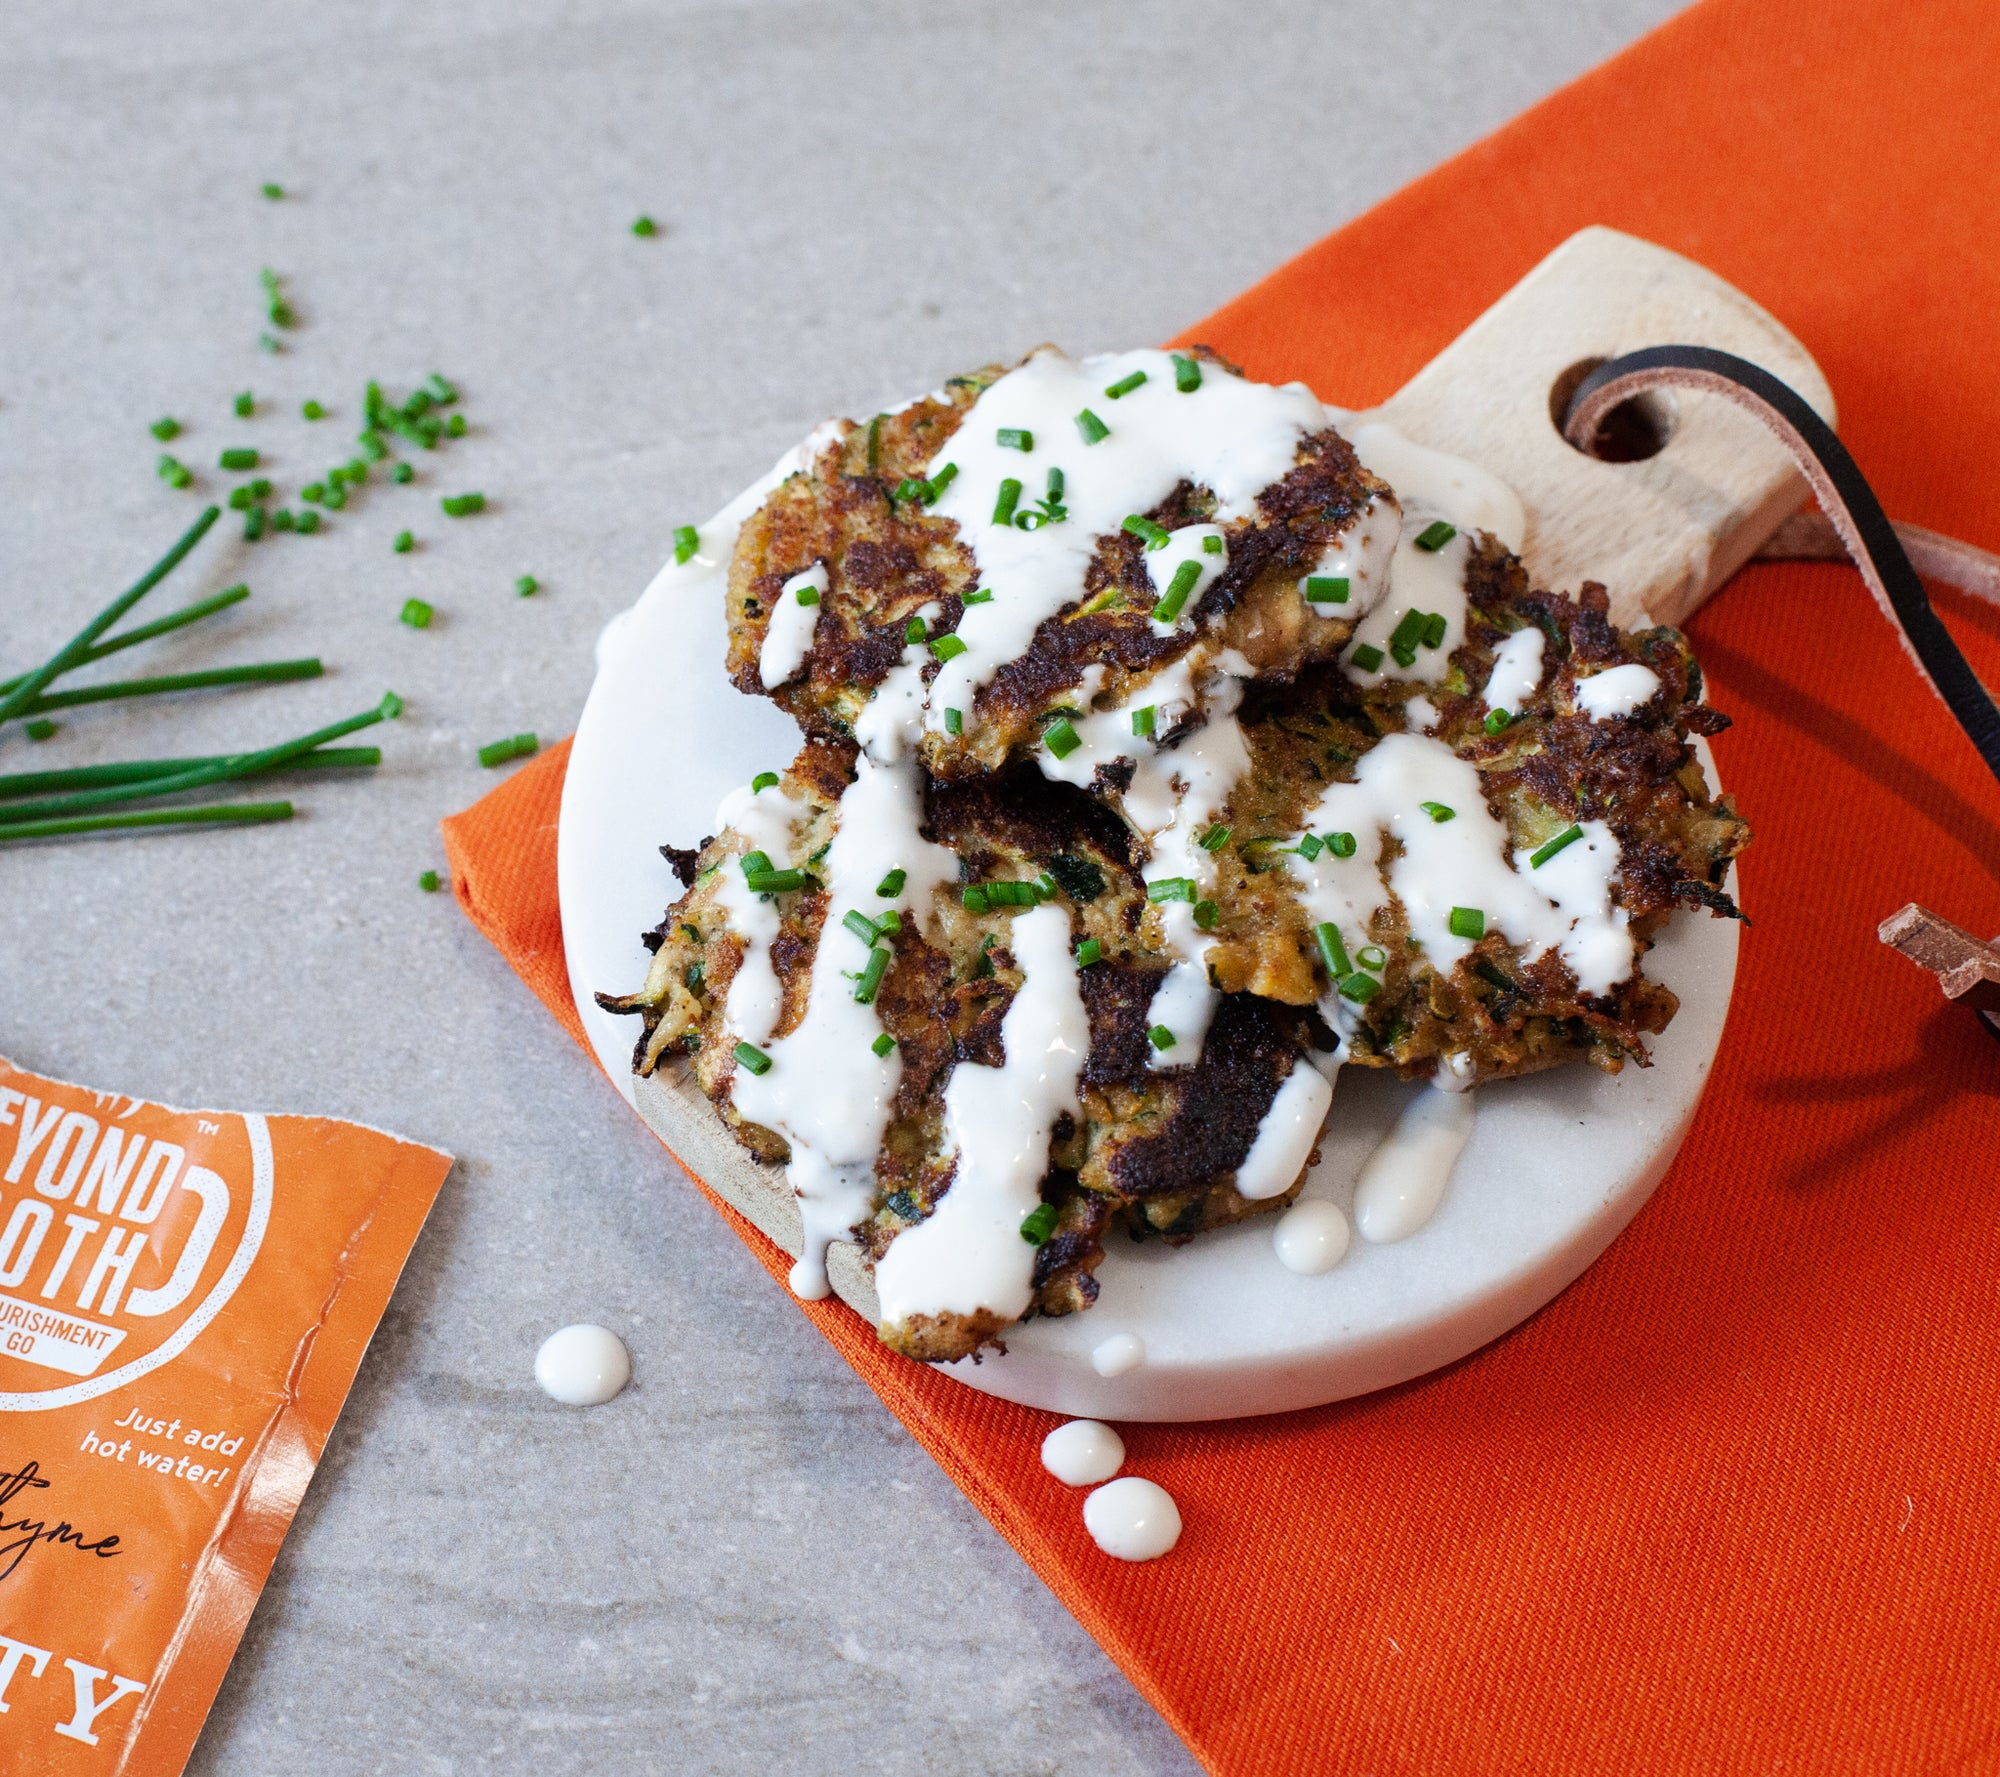 Vitality Zucchini Fritters with Aioli Sauce